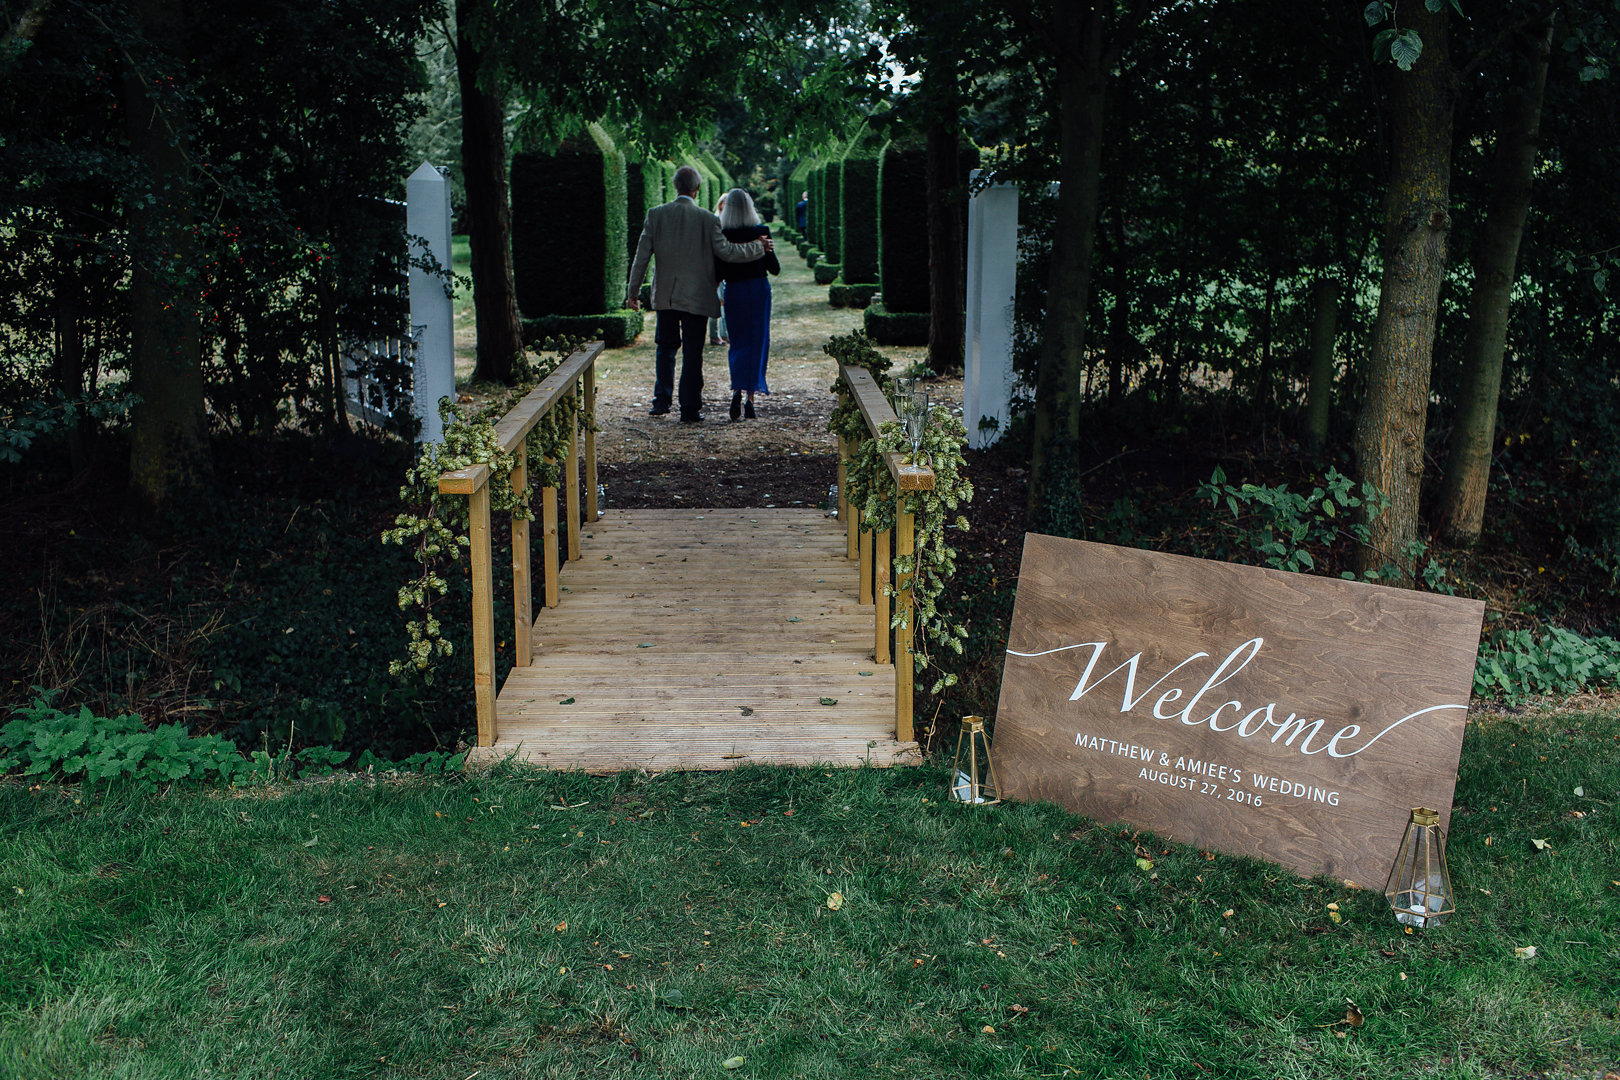 Wedding entrance over the moat and along a walkway of obelisk topiary.